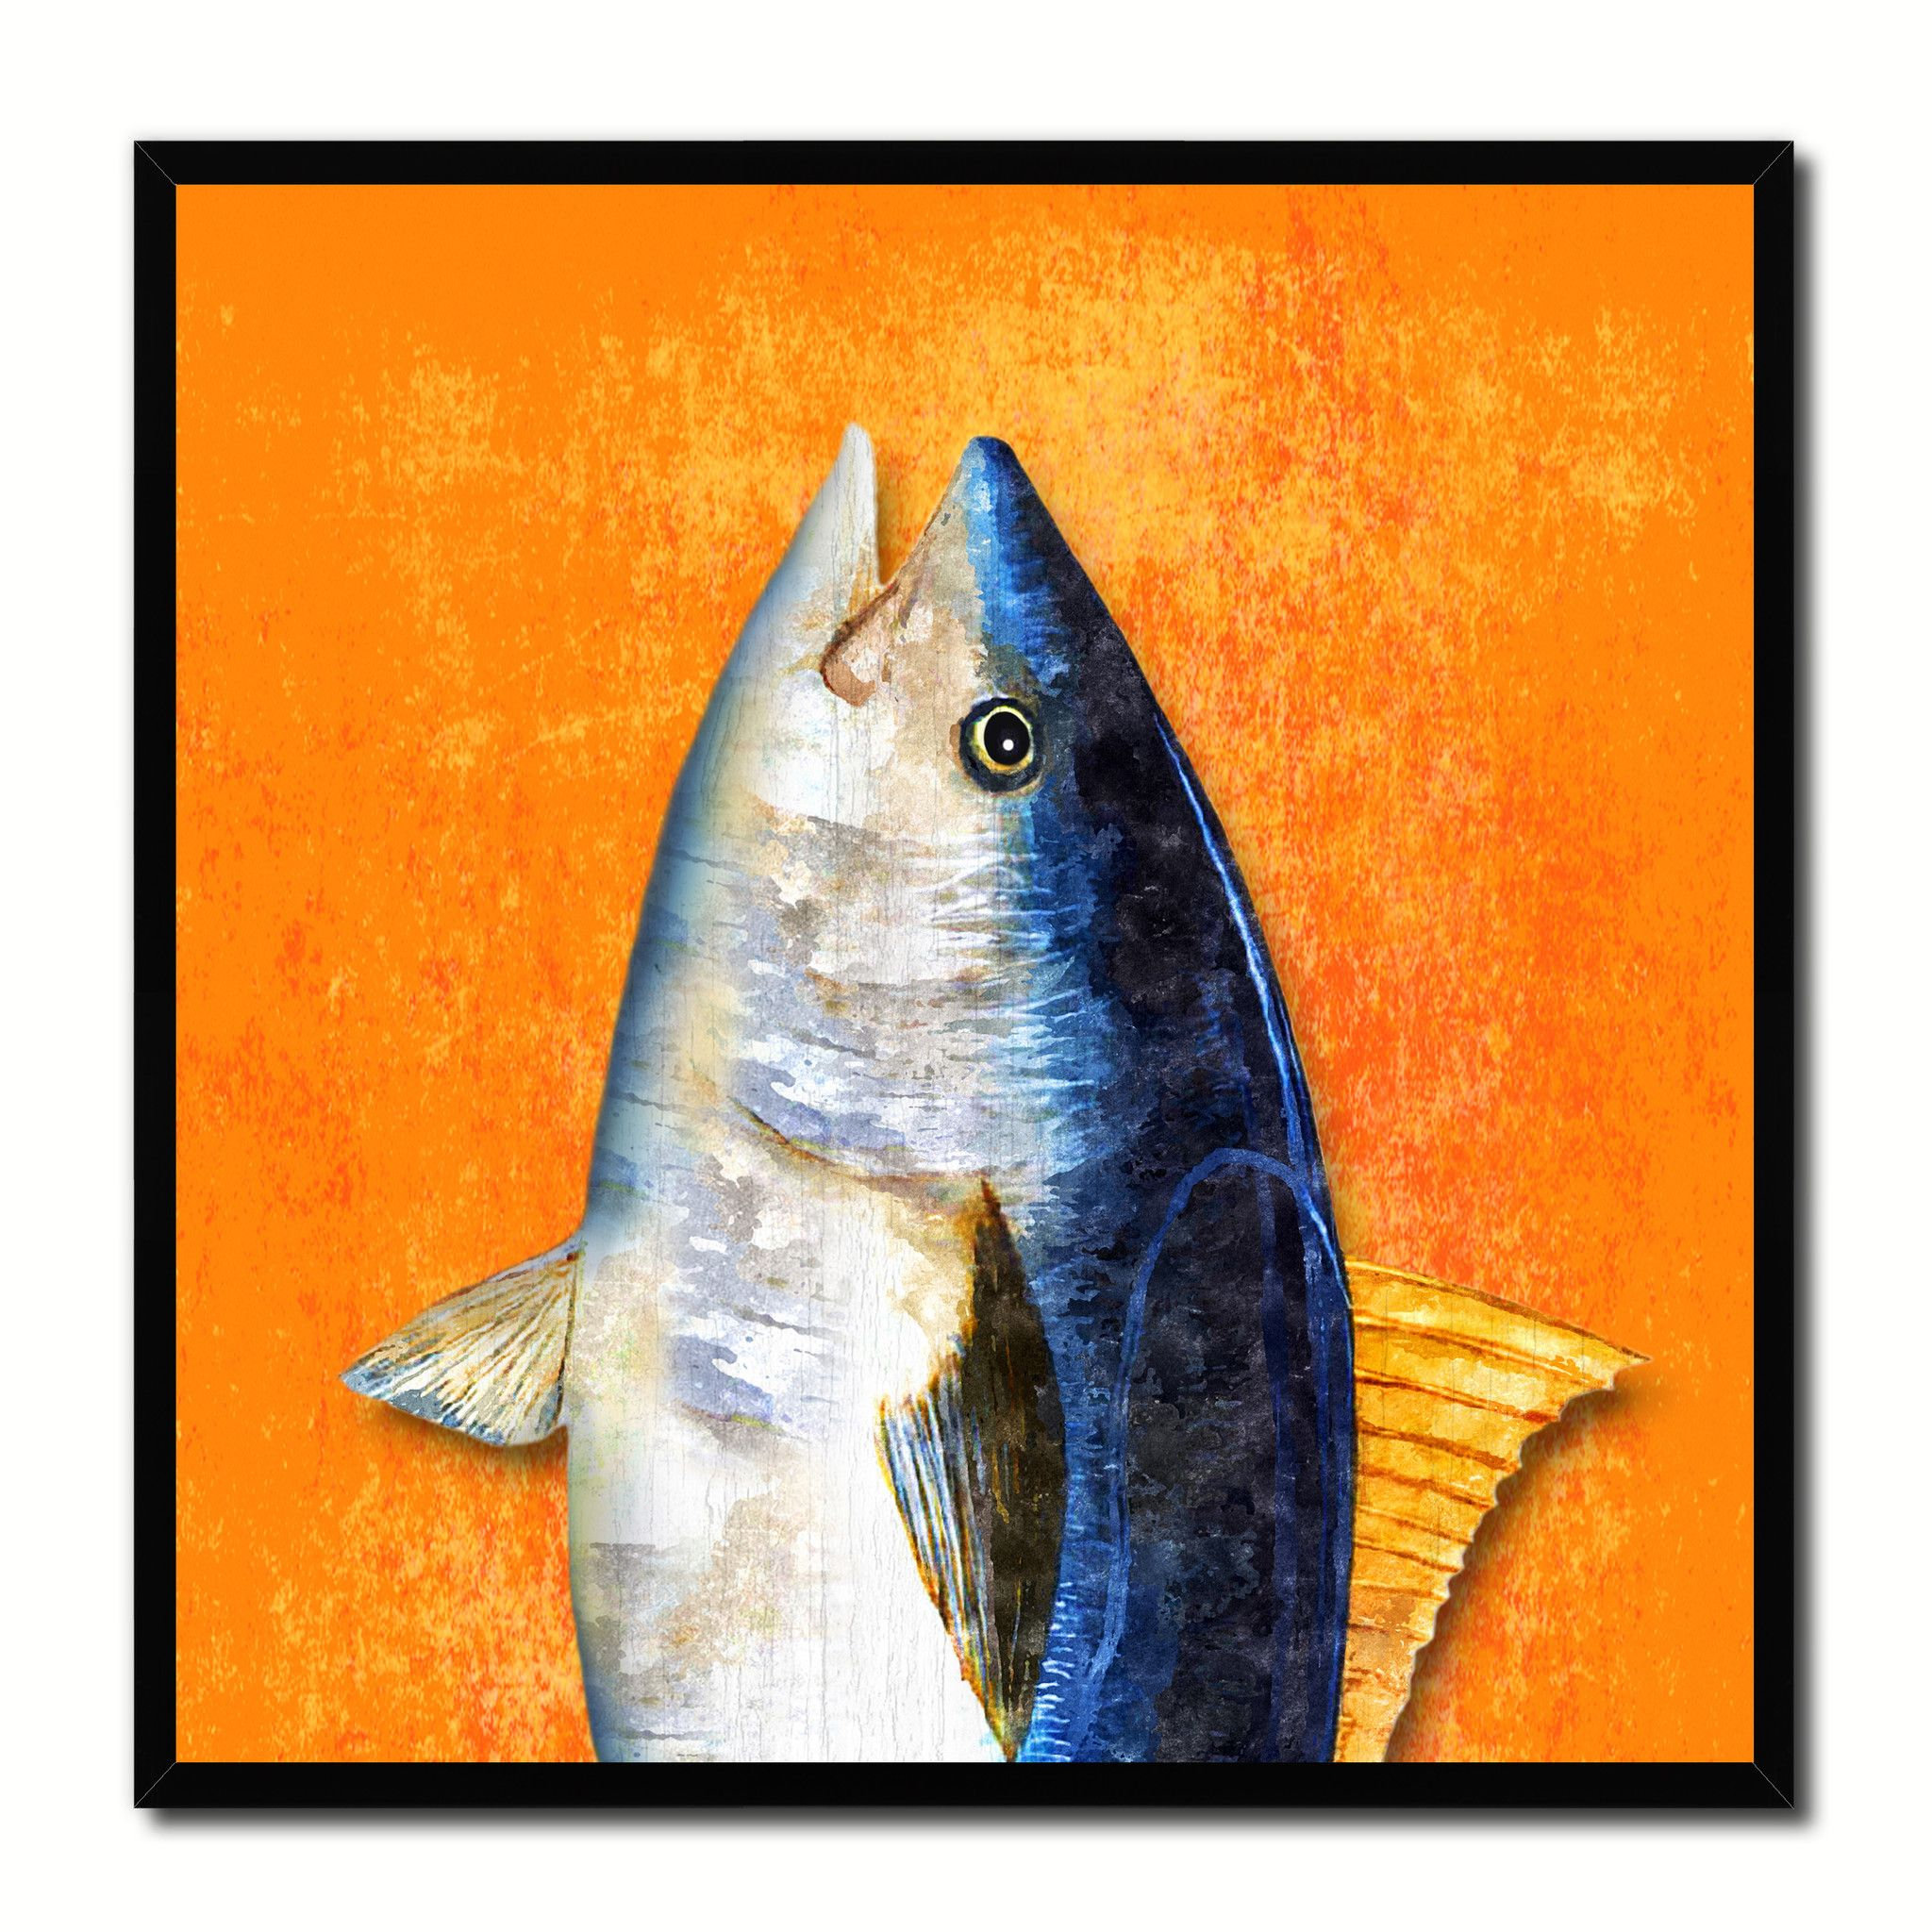 Nautical gifts for the home - Blackfin Tuna Fish Head Art Orange Canvas Print Picture Frame Wall Home Decor Nautical Fishing Gifts